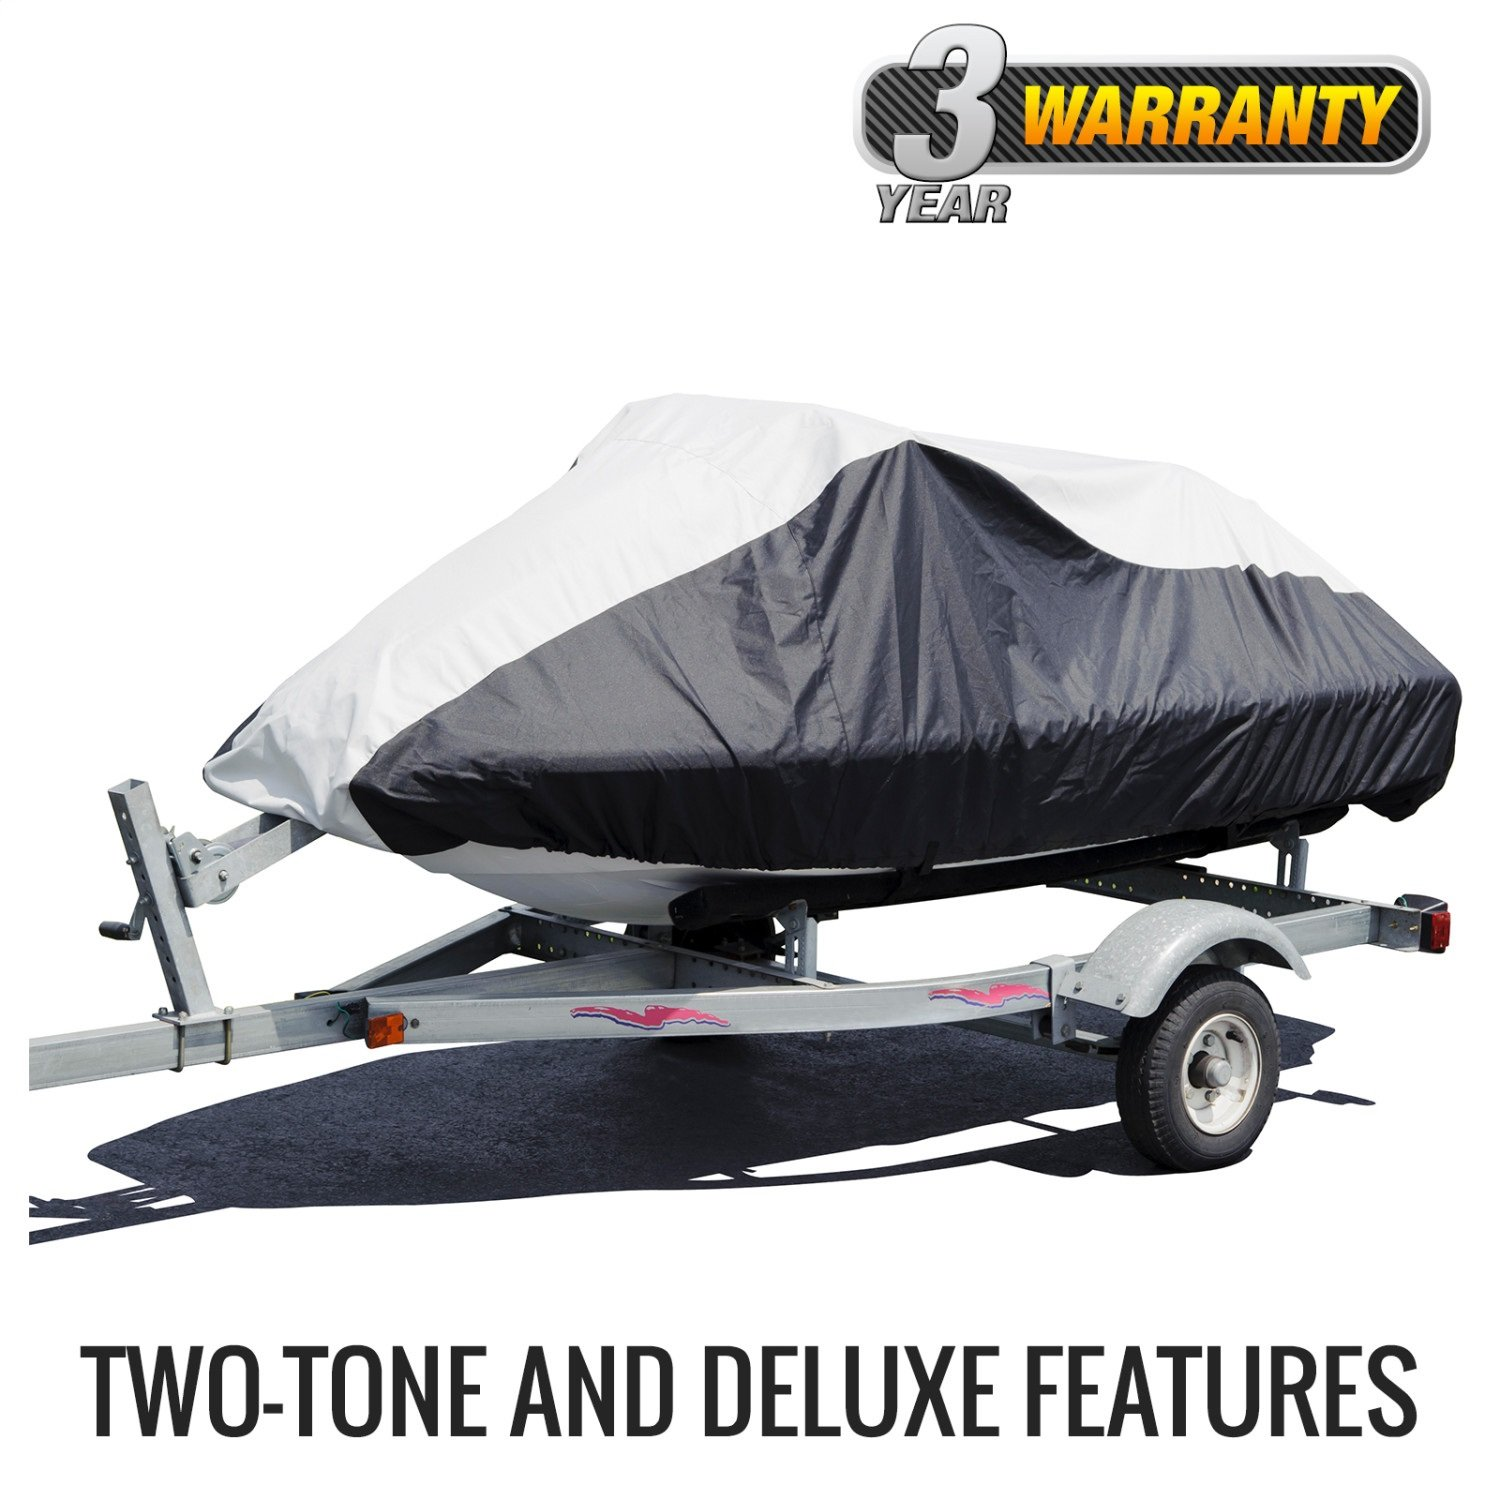 Budge Deluxe Jet Ski Cover Fits Jet Skis 116'' to 135'' Long, Black/Gray by Budge